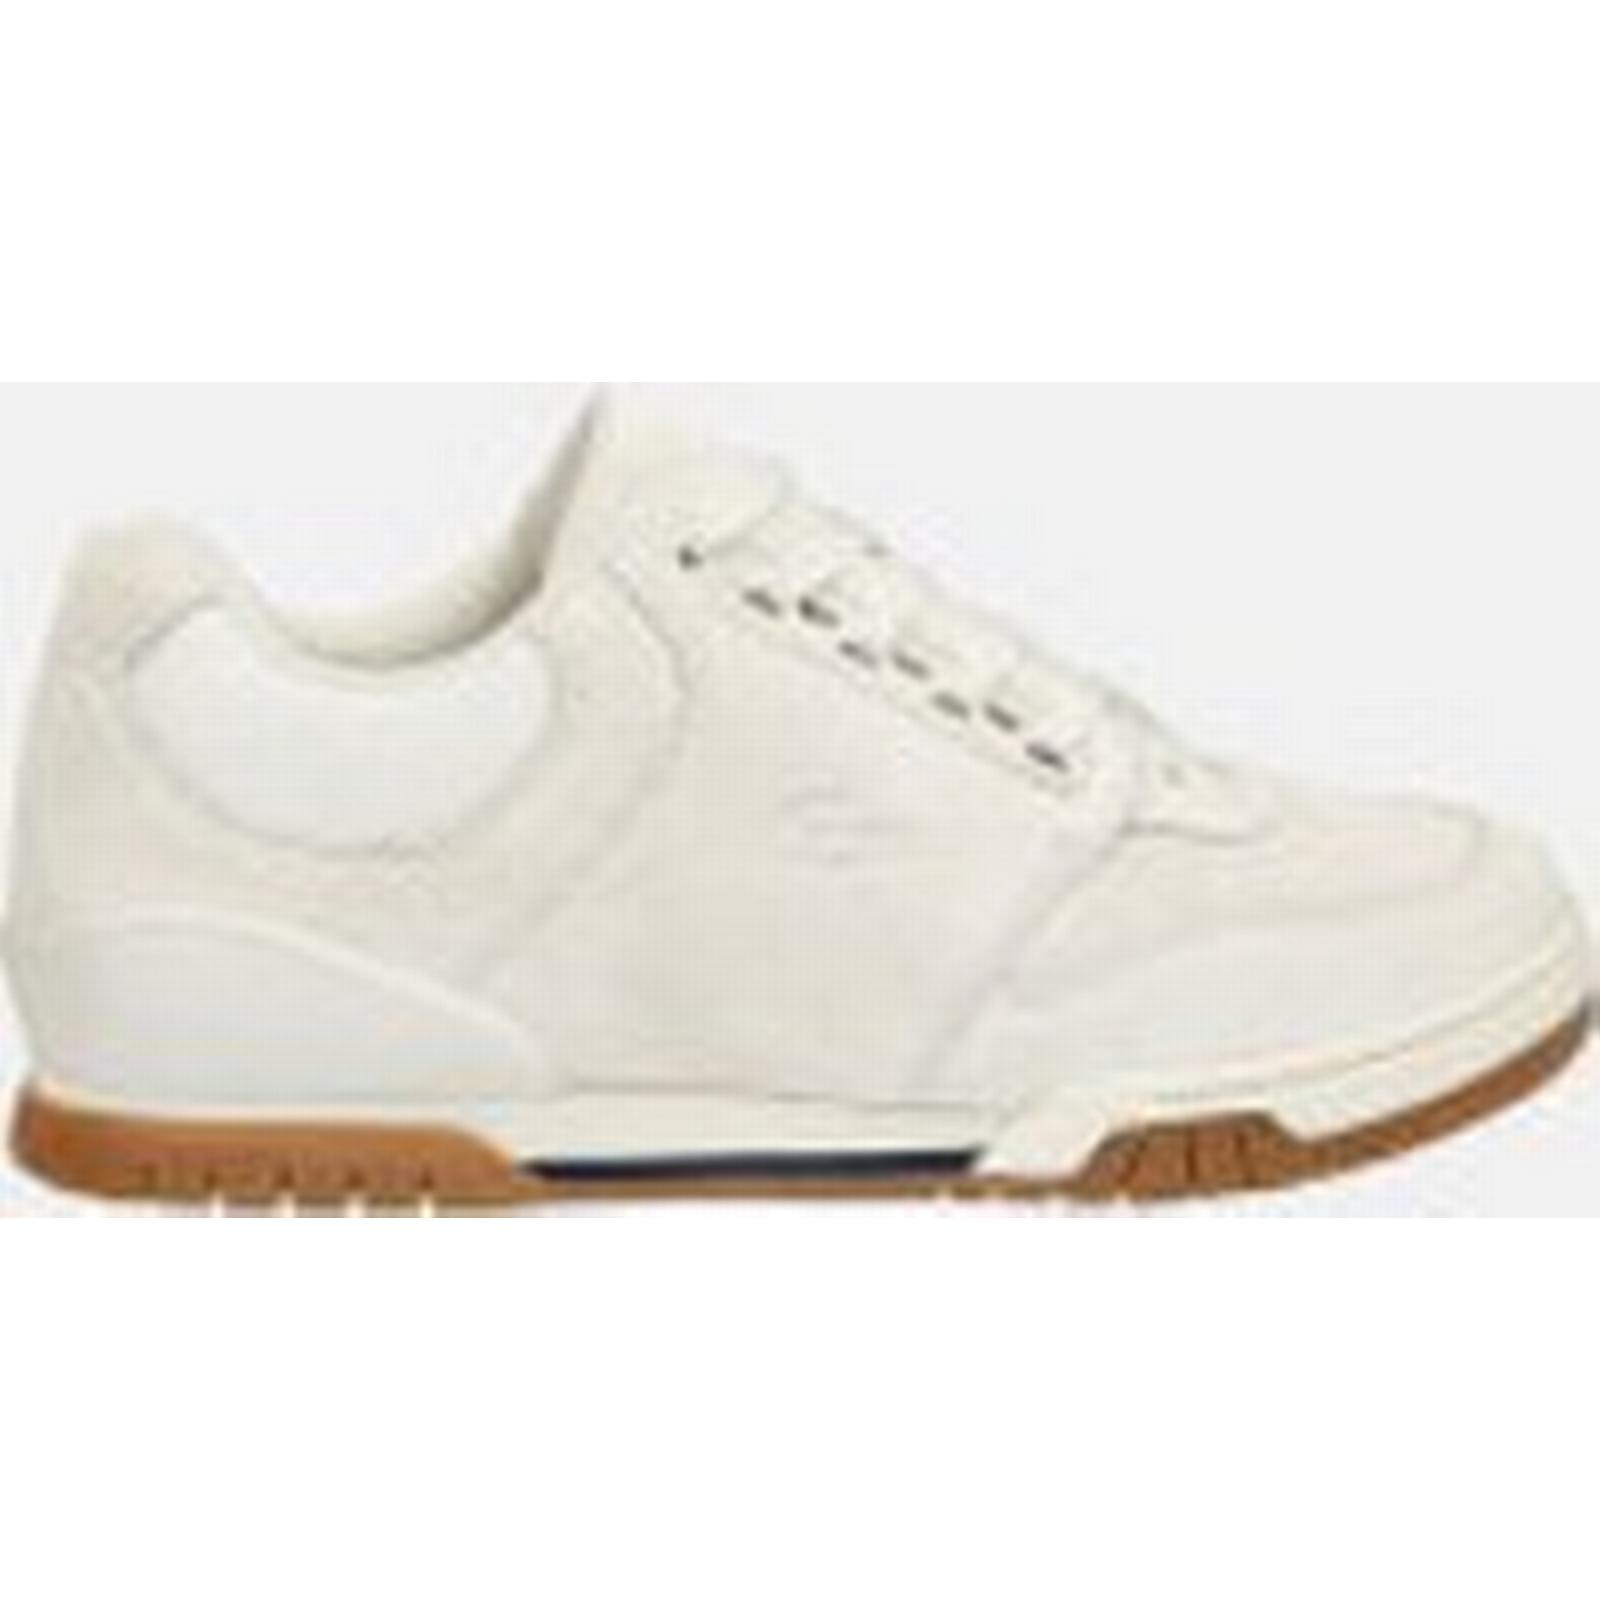 lacoste hommes & #    ; s indiana  formateurs - blancs - royaume - uni  - Blanc  bfd892